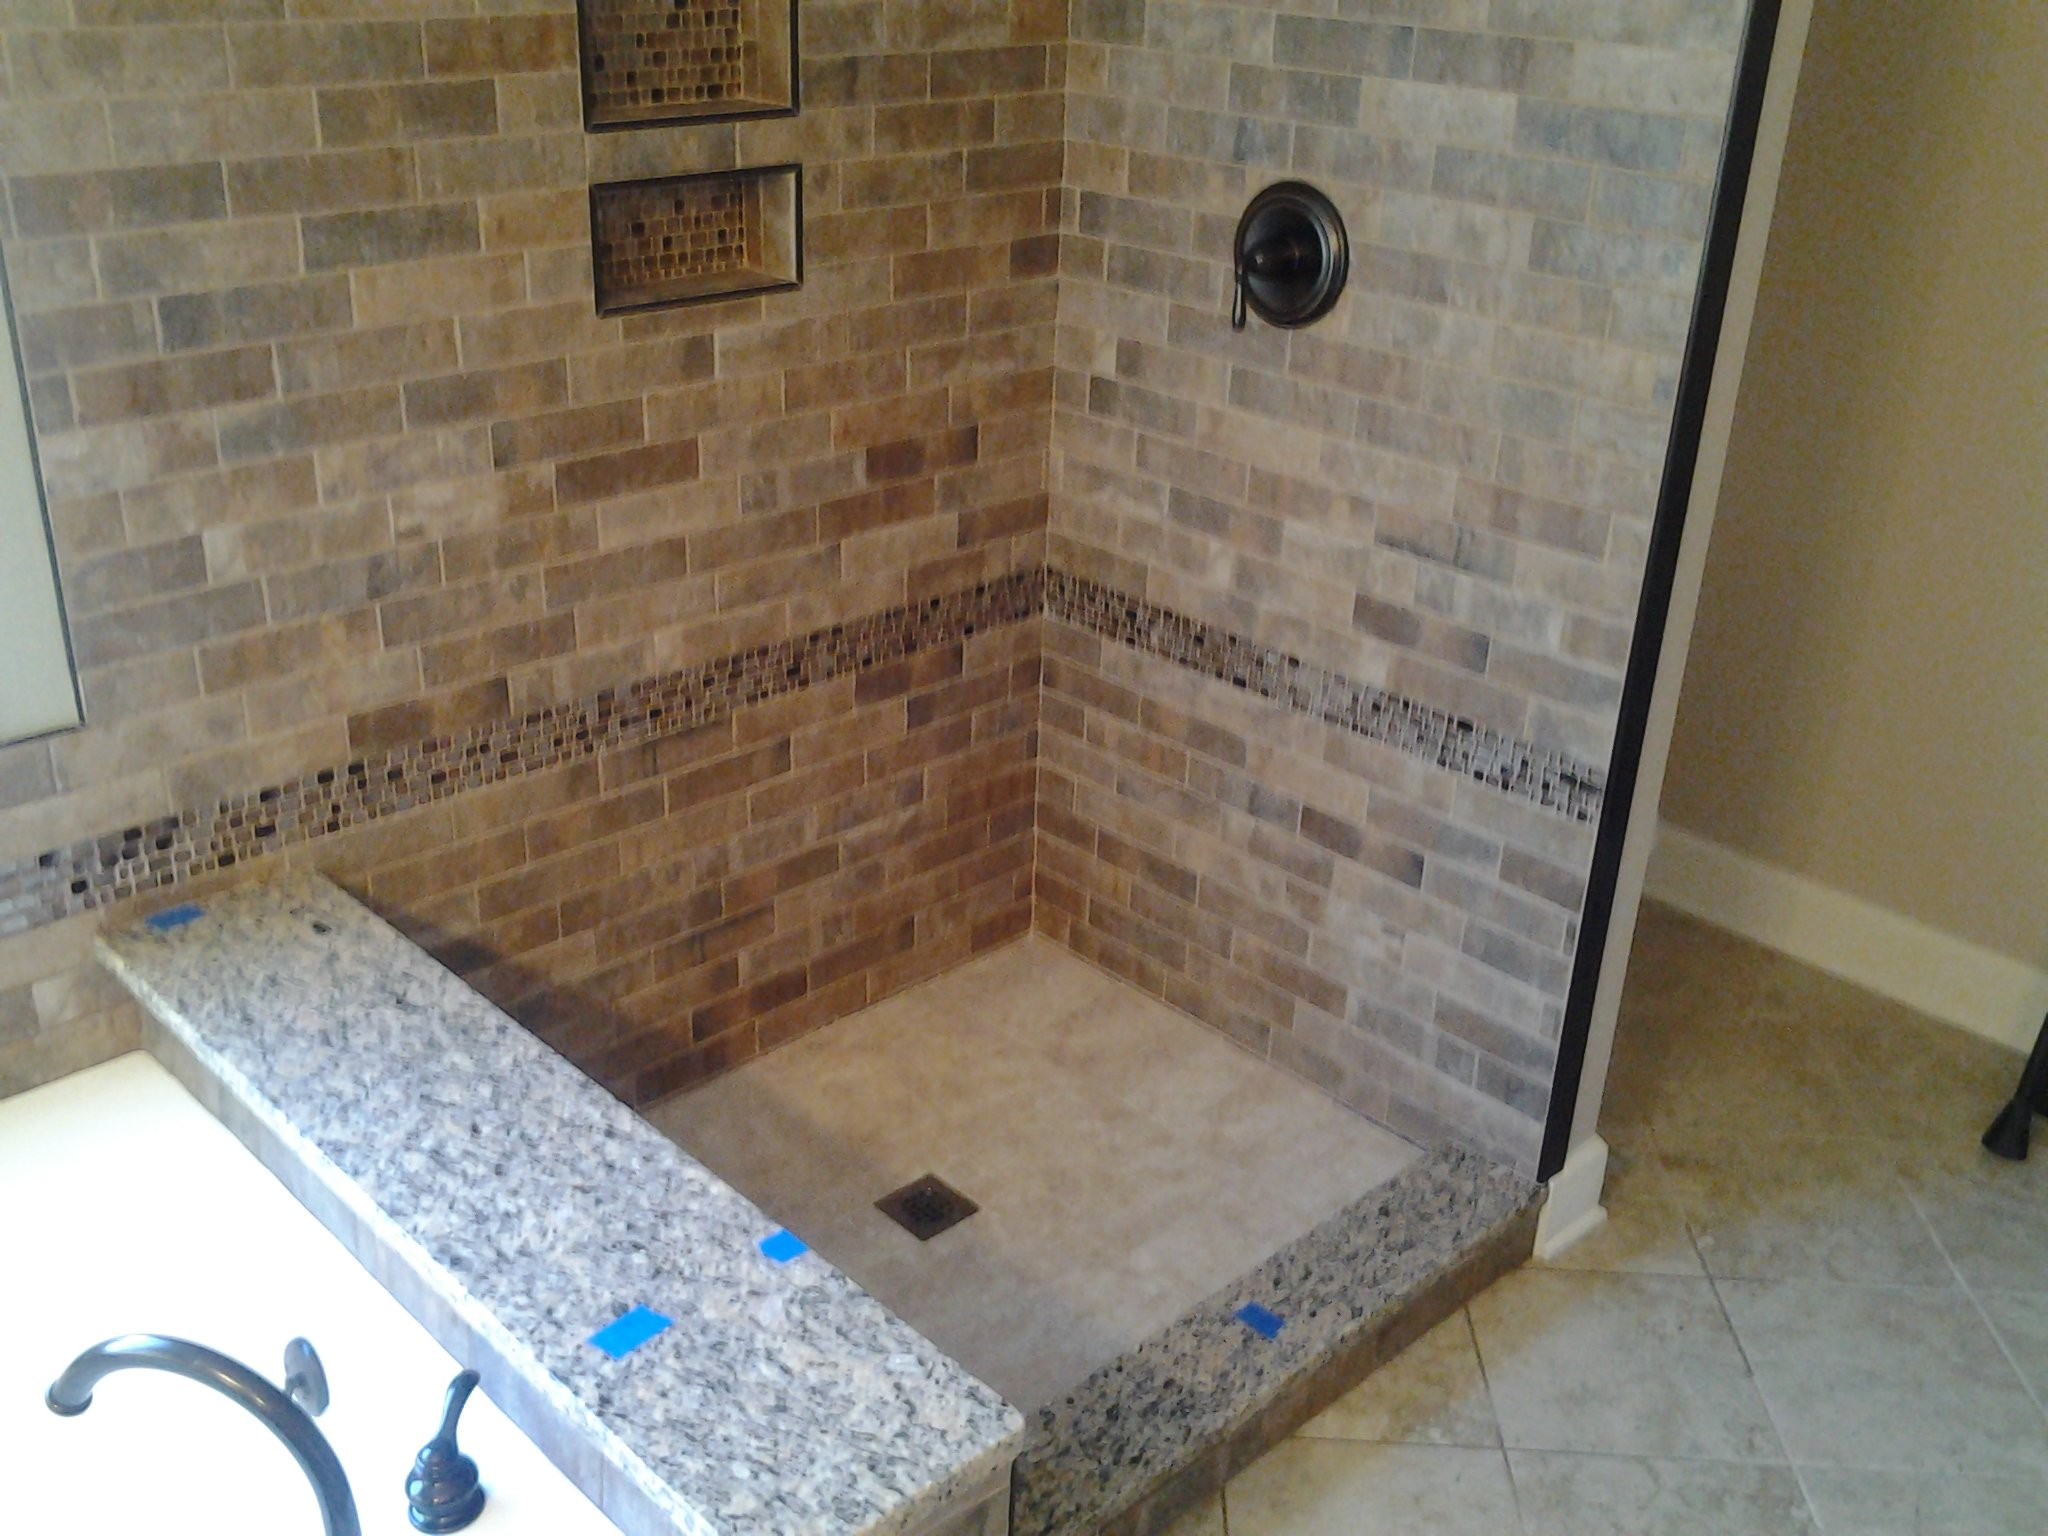 J R Floor Covering Saratoga Springs NY Bathroom Remodel - Bathroom remodel saratoga springs ny